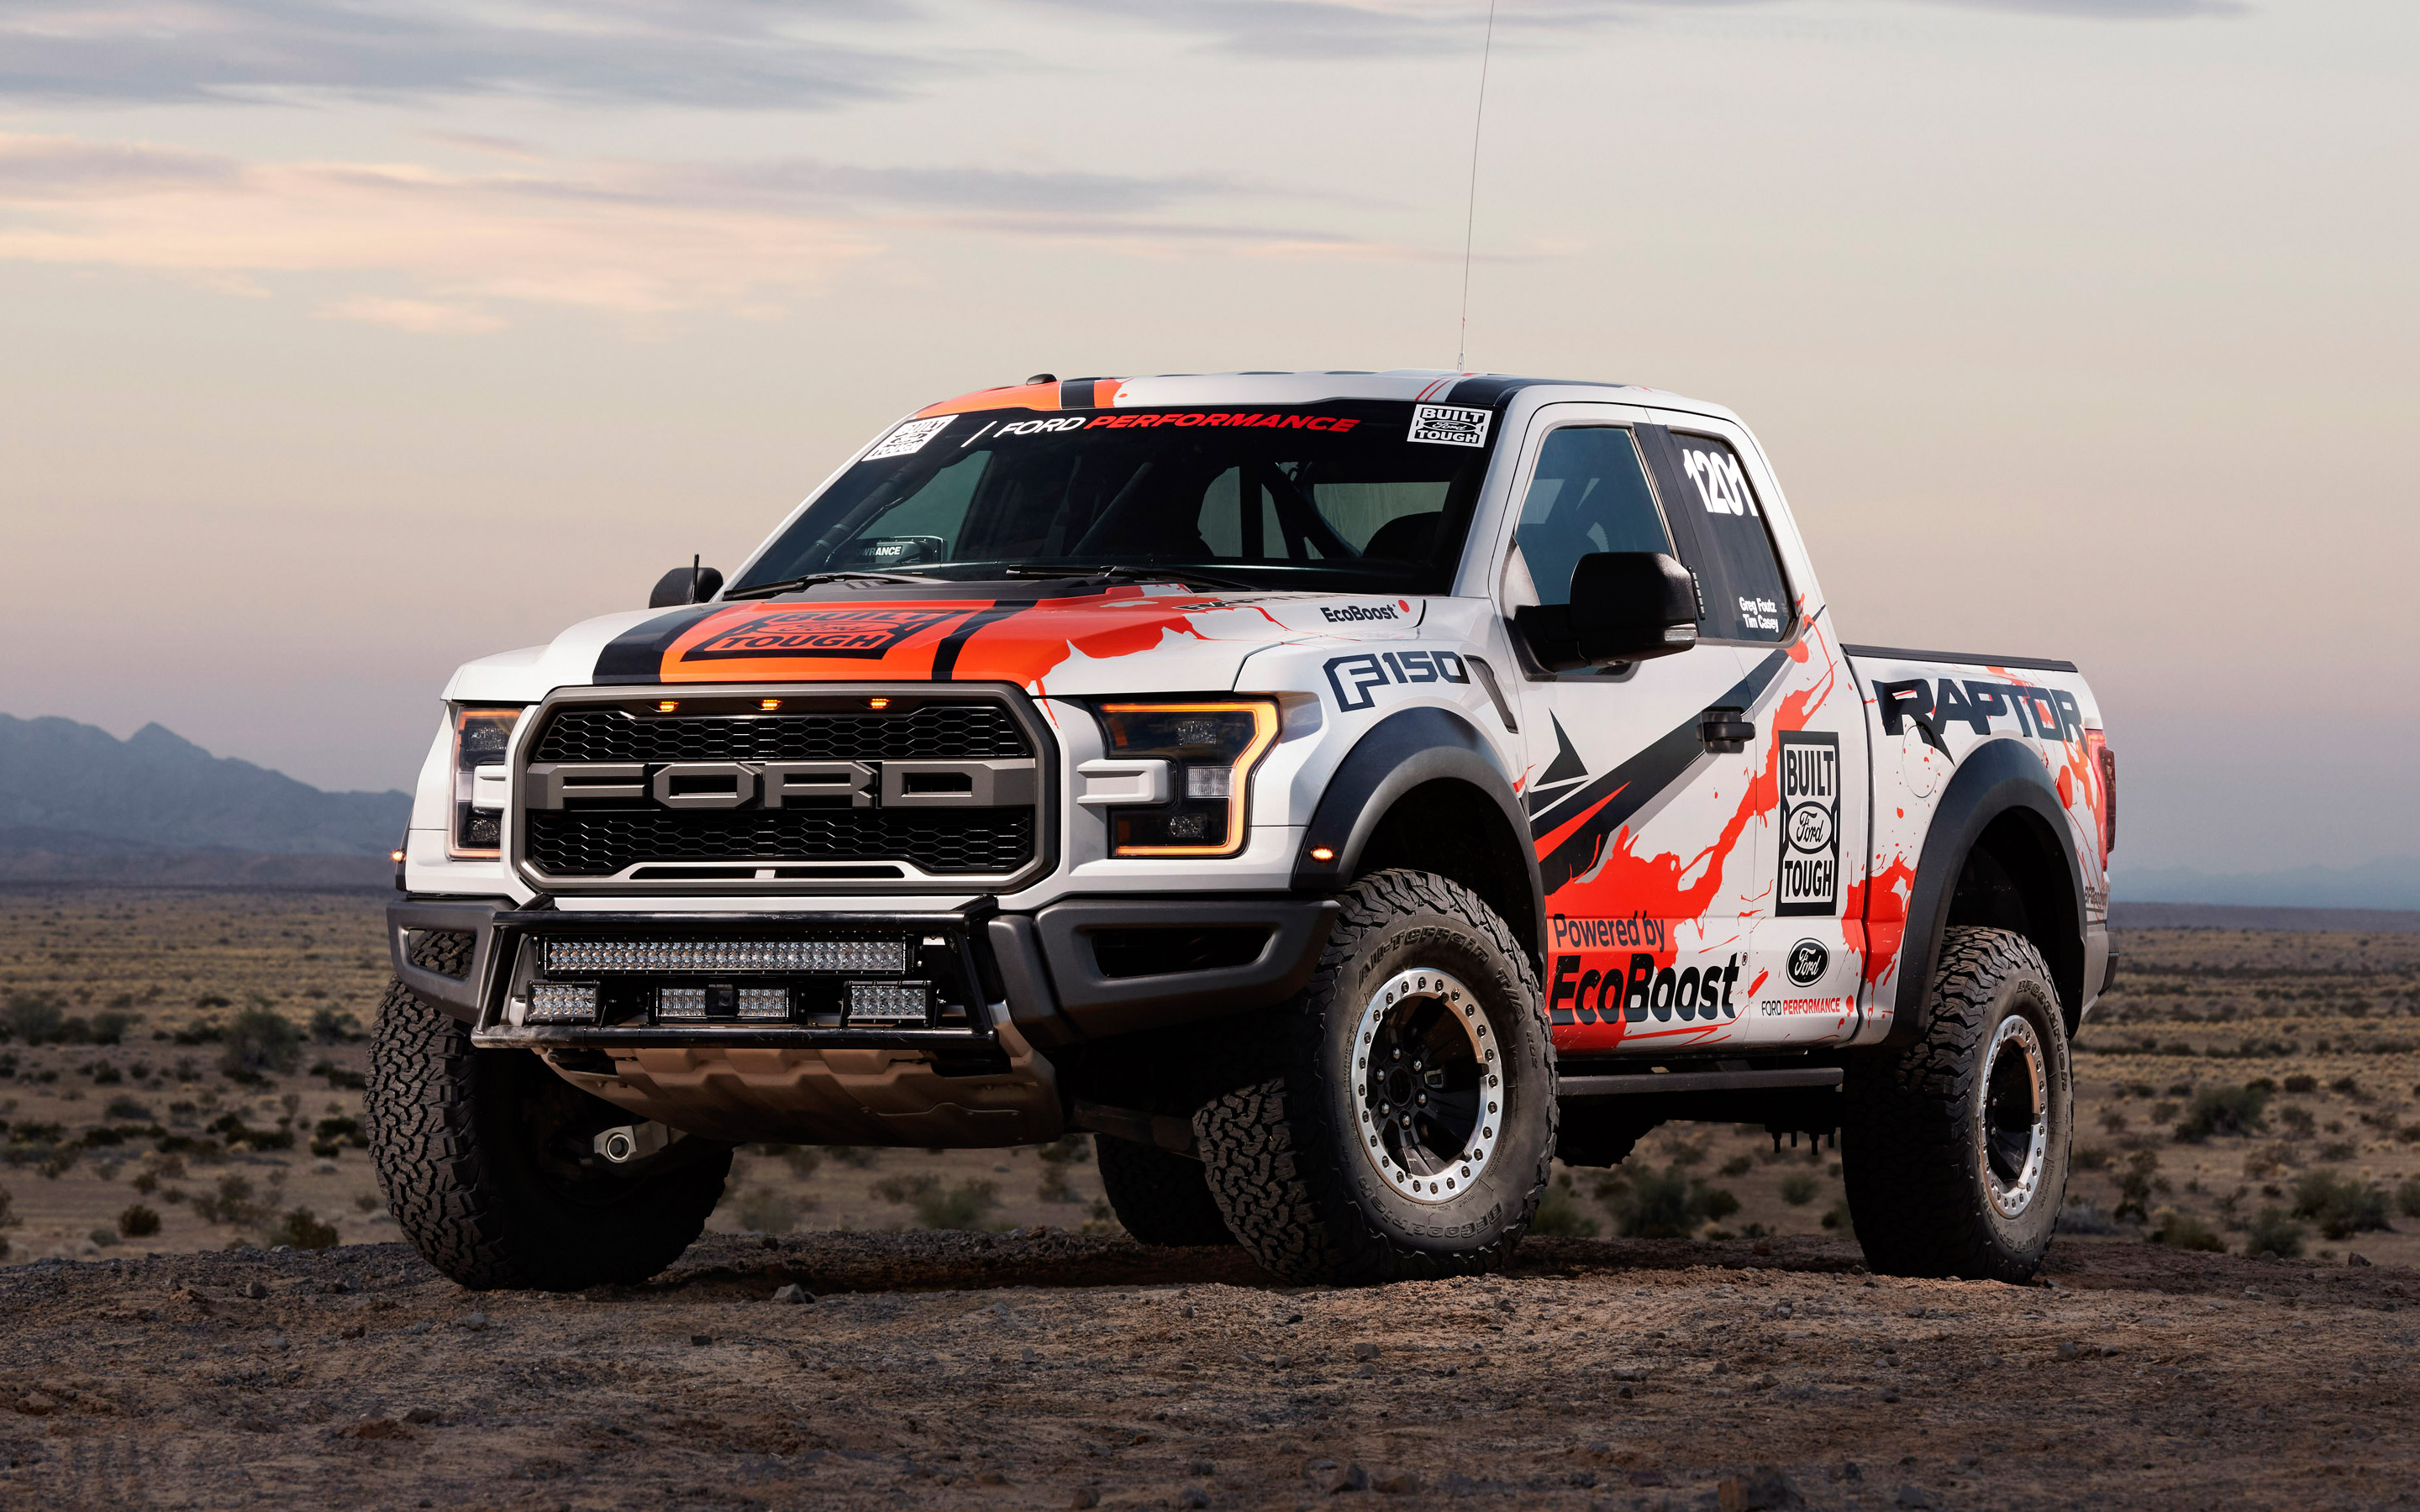 2016 ford f 150 raptor 3 wallpaper hd car wallpapers id 6426. Black Bedroom Furniture Sets. Home Design Ideas